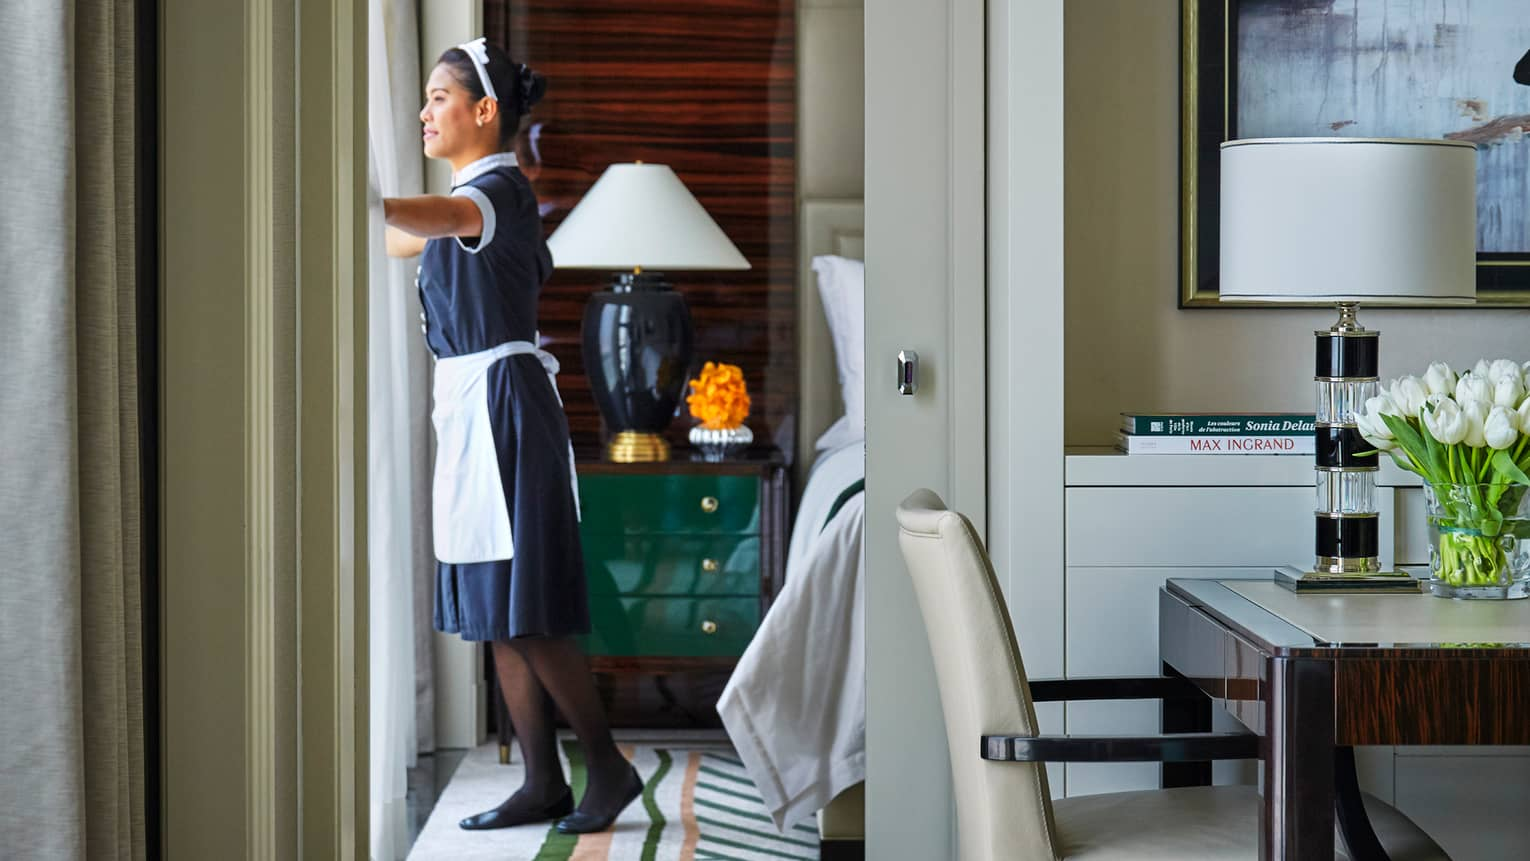 Housekeeper in black-and-white uniform draws curtains in hotel room on sunny day